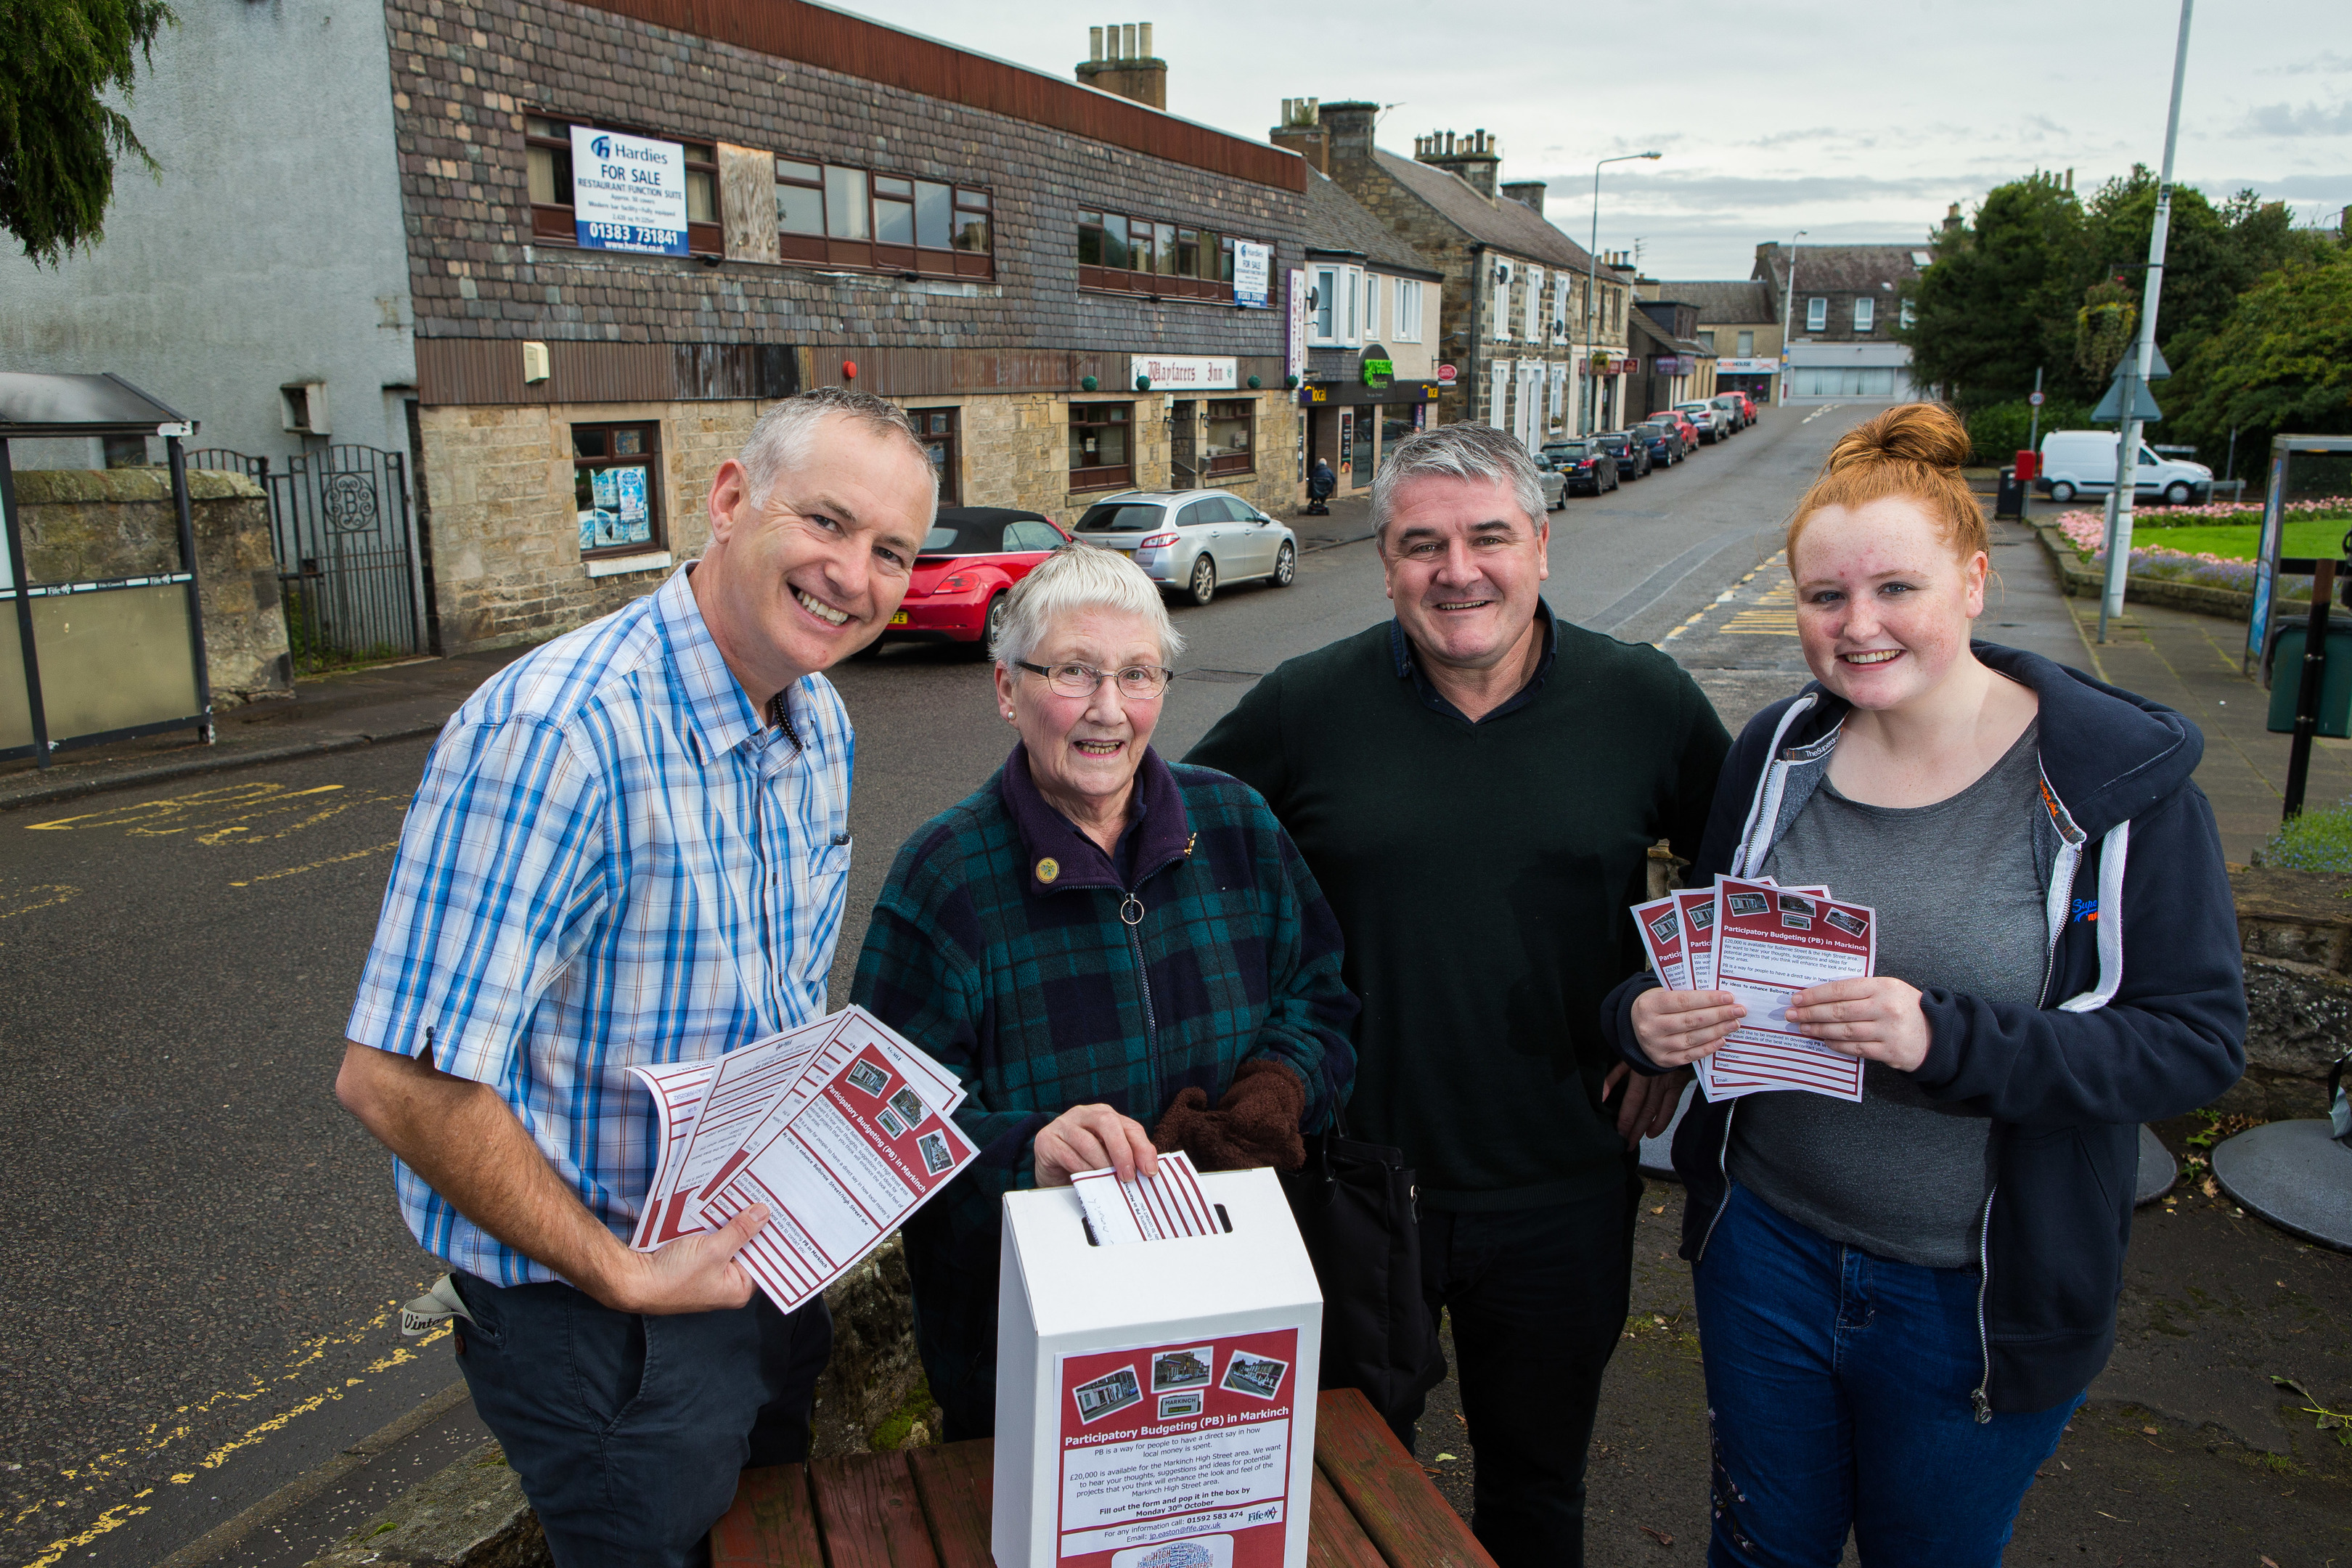 JP Easton (Fife Council), David Hewitt (Fife Council), local resident Marion Law and Modern Apprentice Amy Nicol (19) with the new ballot boxes for ideas on what to spend the £20,000 on.